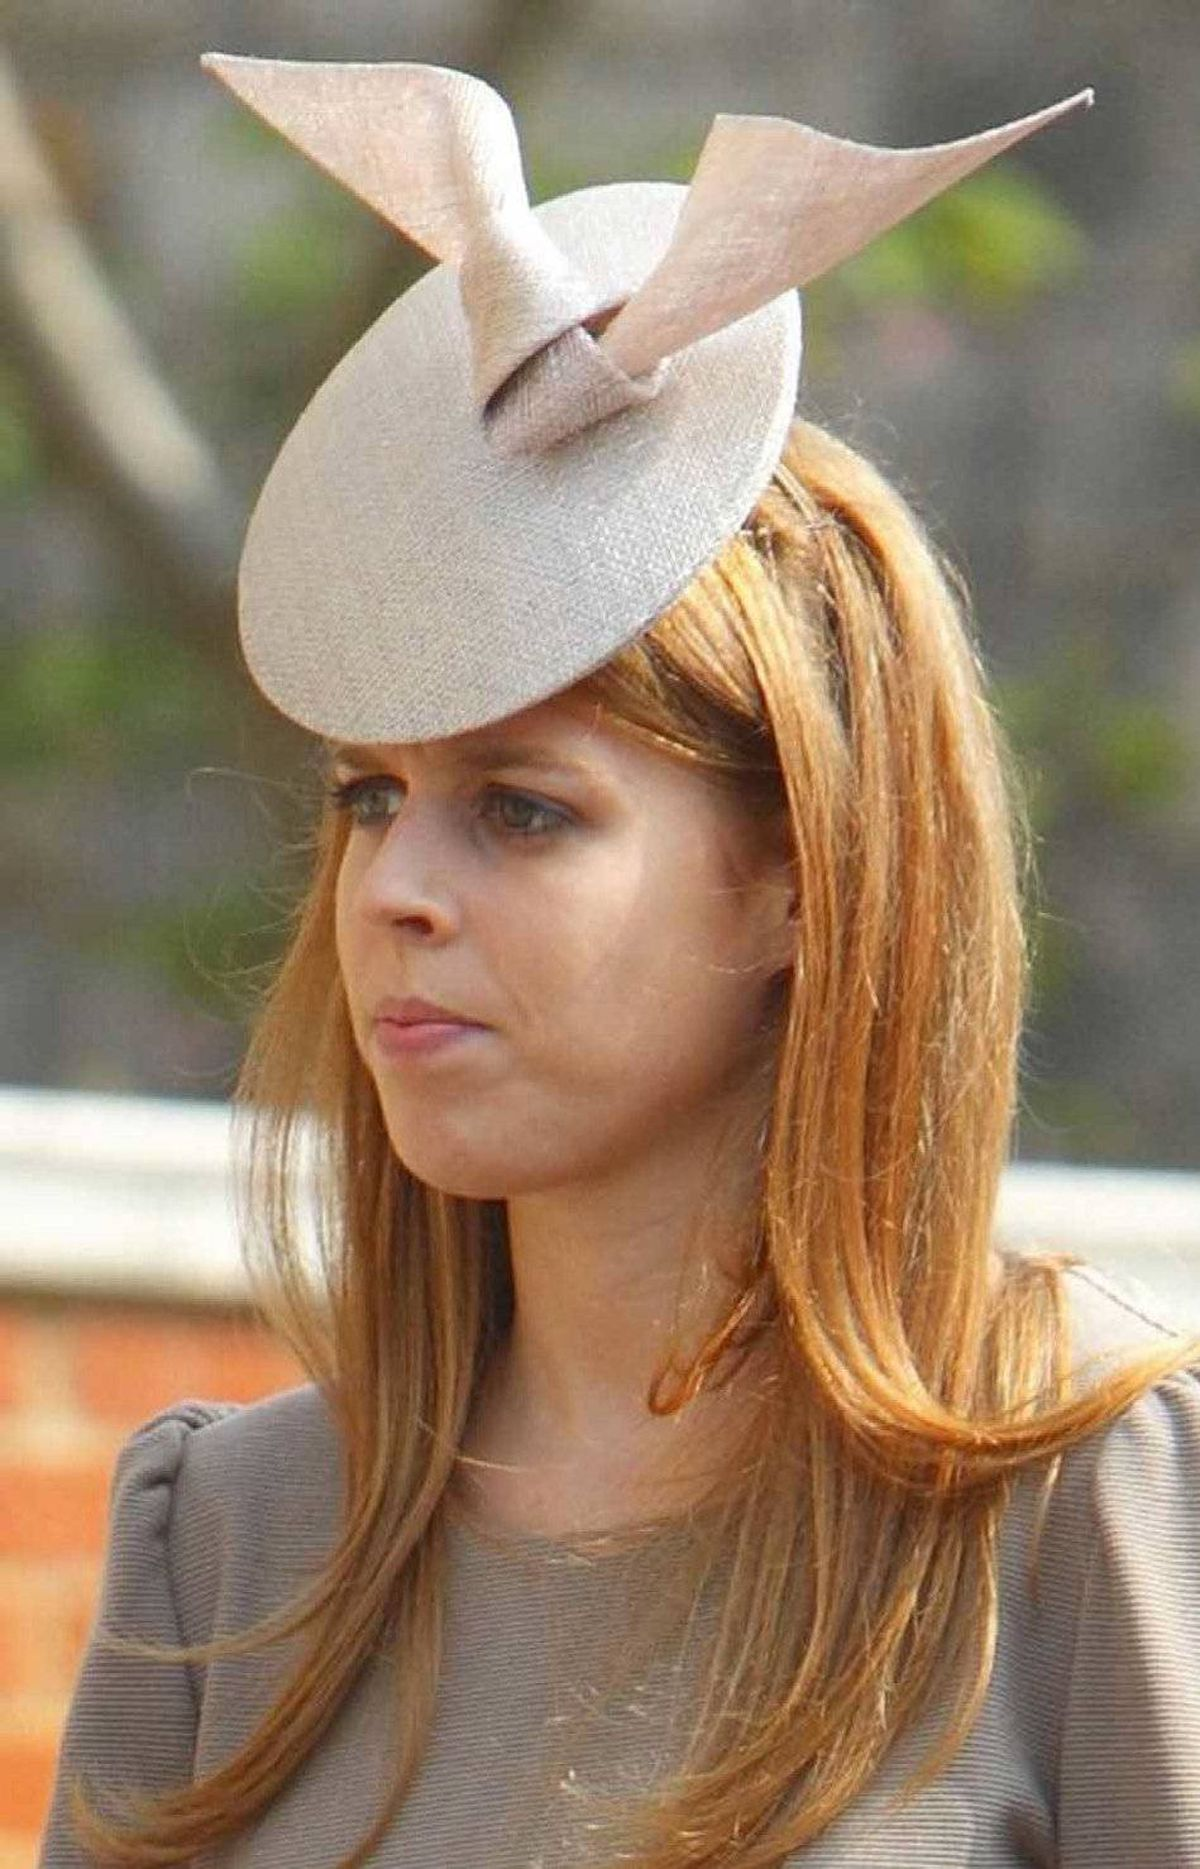 Britain's Princess Beatrice arrive for the Easter Matins Service at St George's Chapel, Windsor Castle, Windsor, England Sunday April 24, 2011.